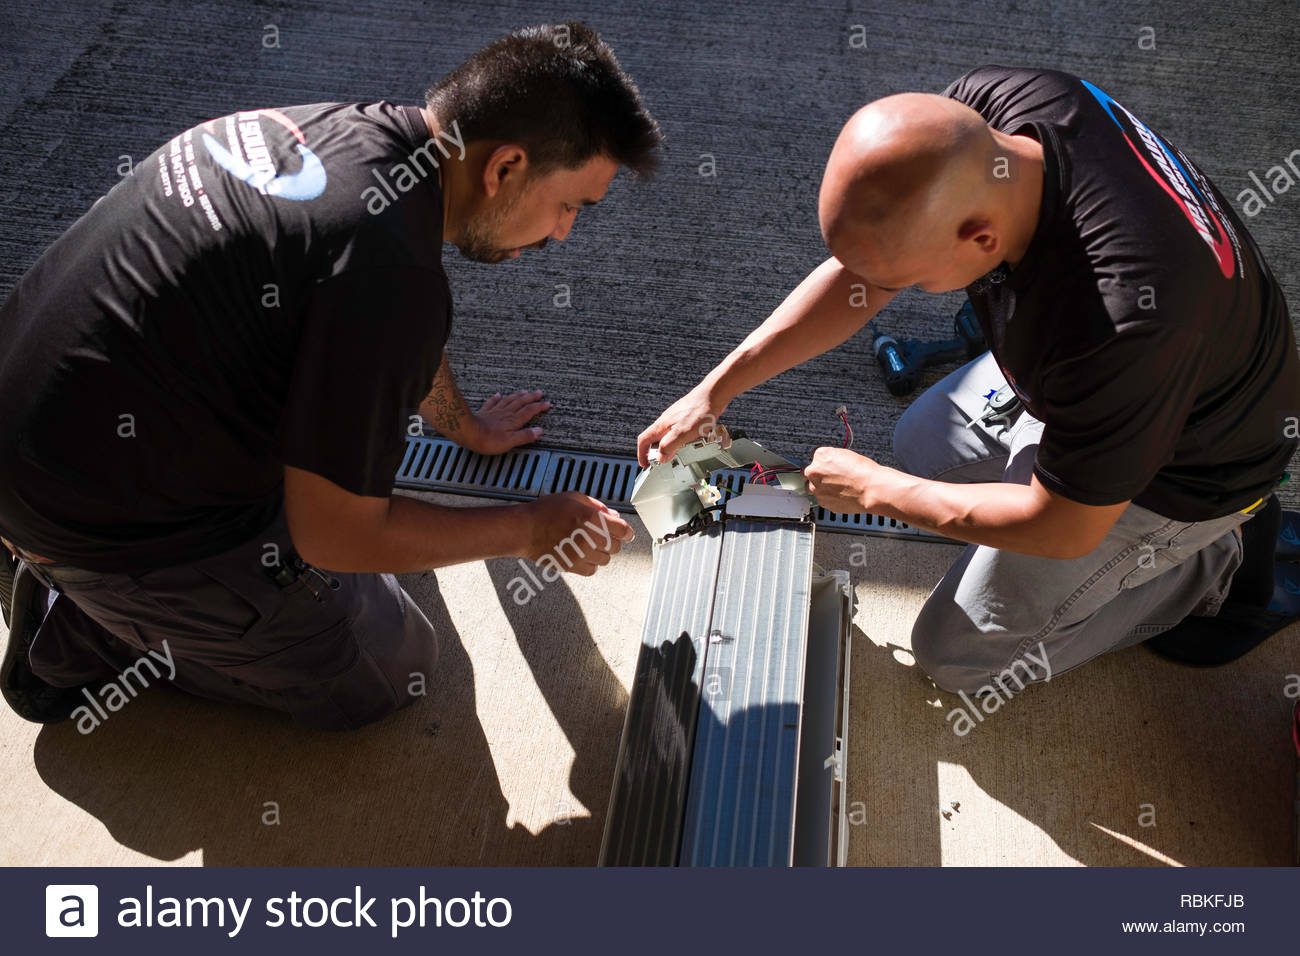 Two men disassembling ductless air condition unit, Honolulu, Oahu, Hawaii, USA - Stock Image